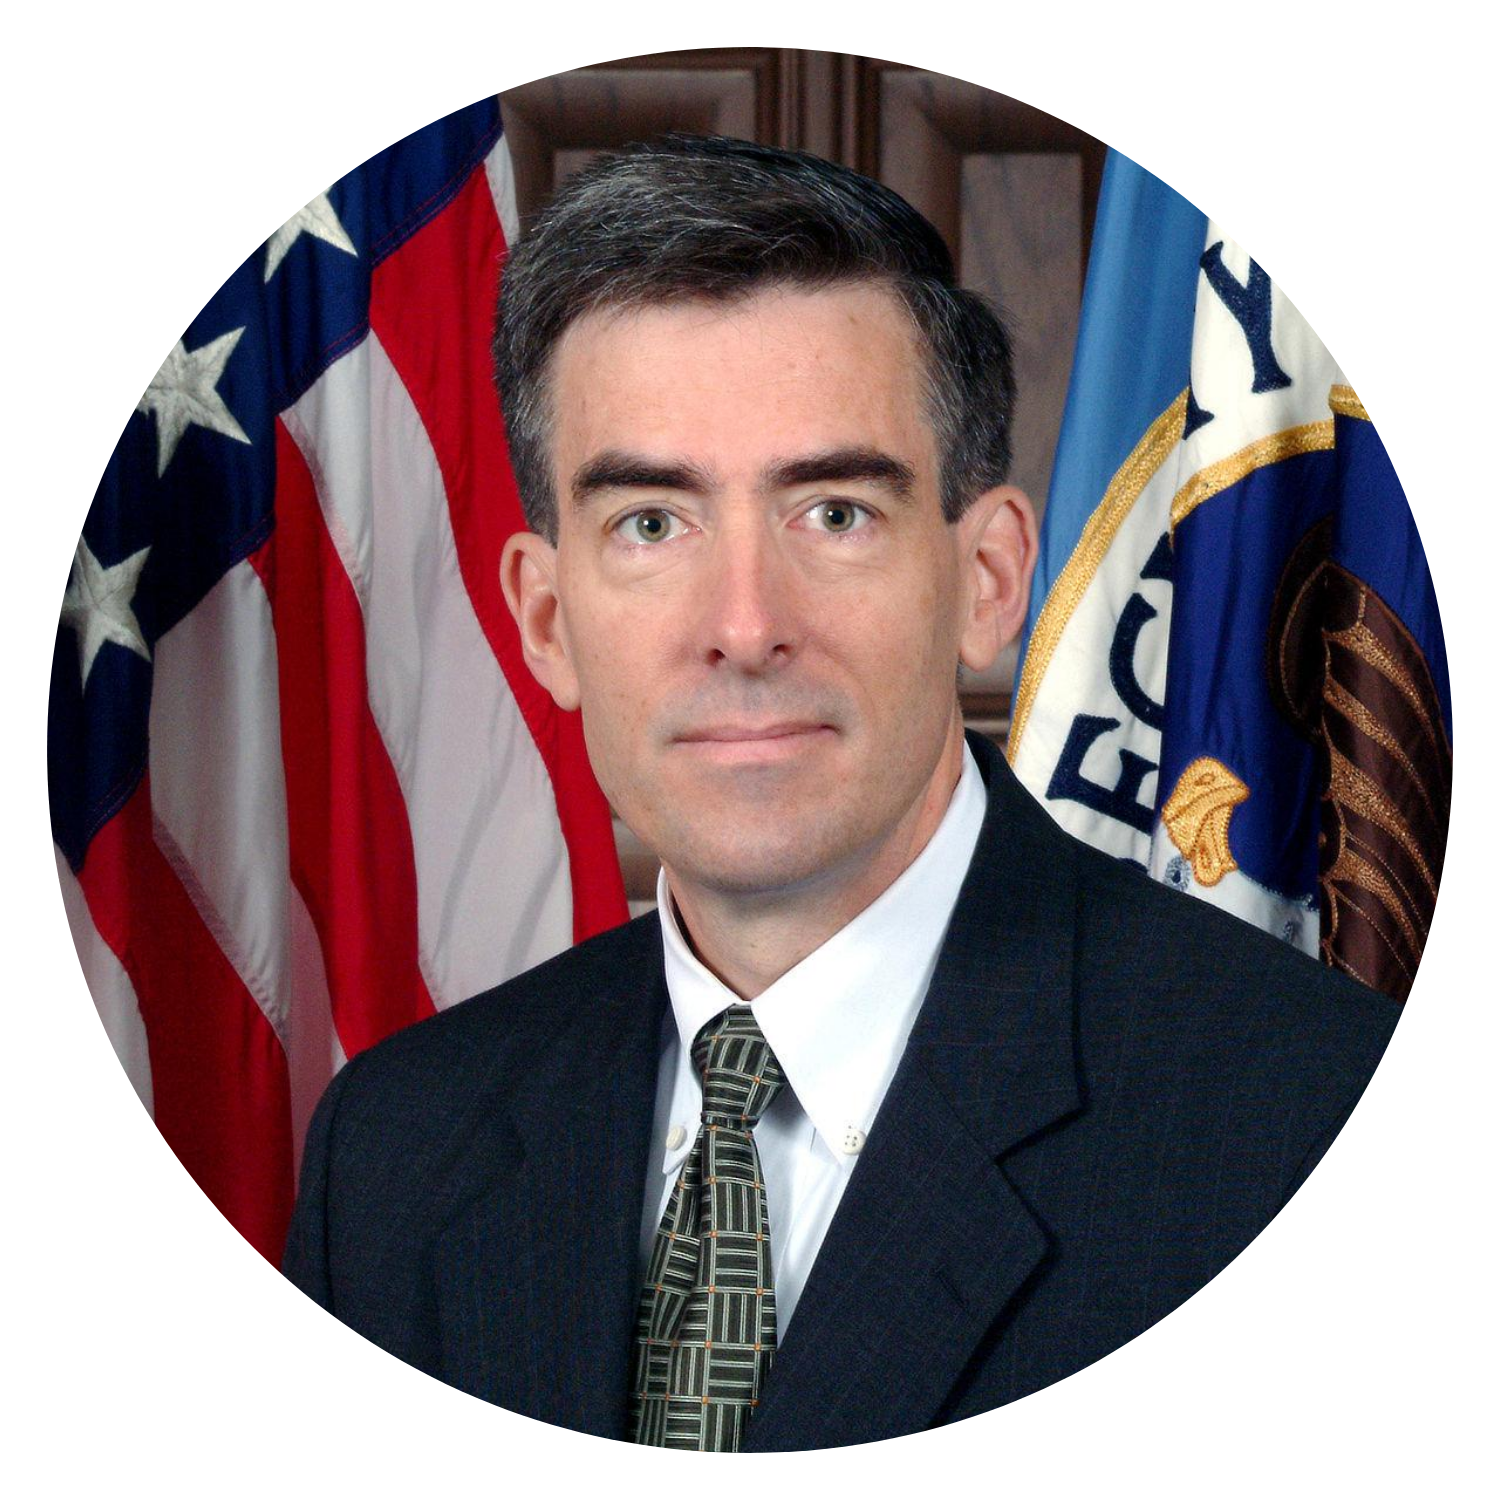 Mr. Chris Inglis, Former Deputy Director, National Security Agency